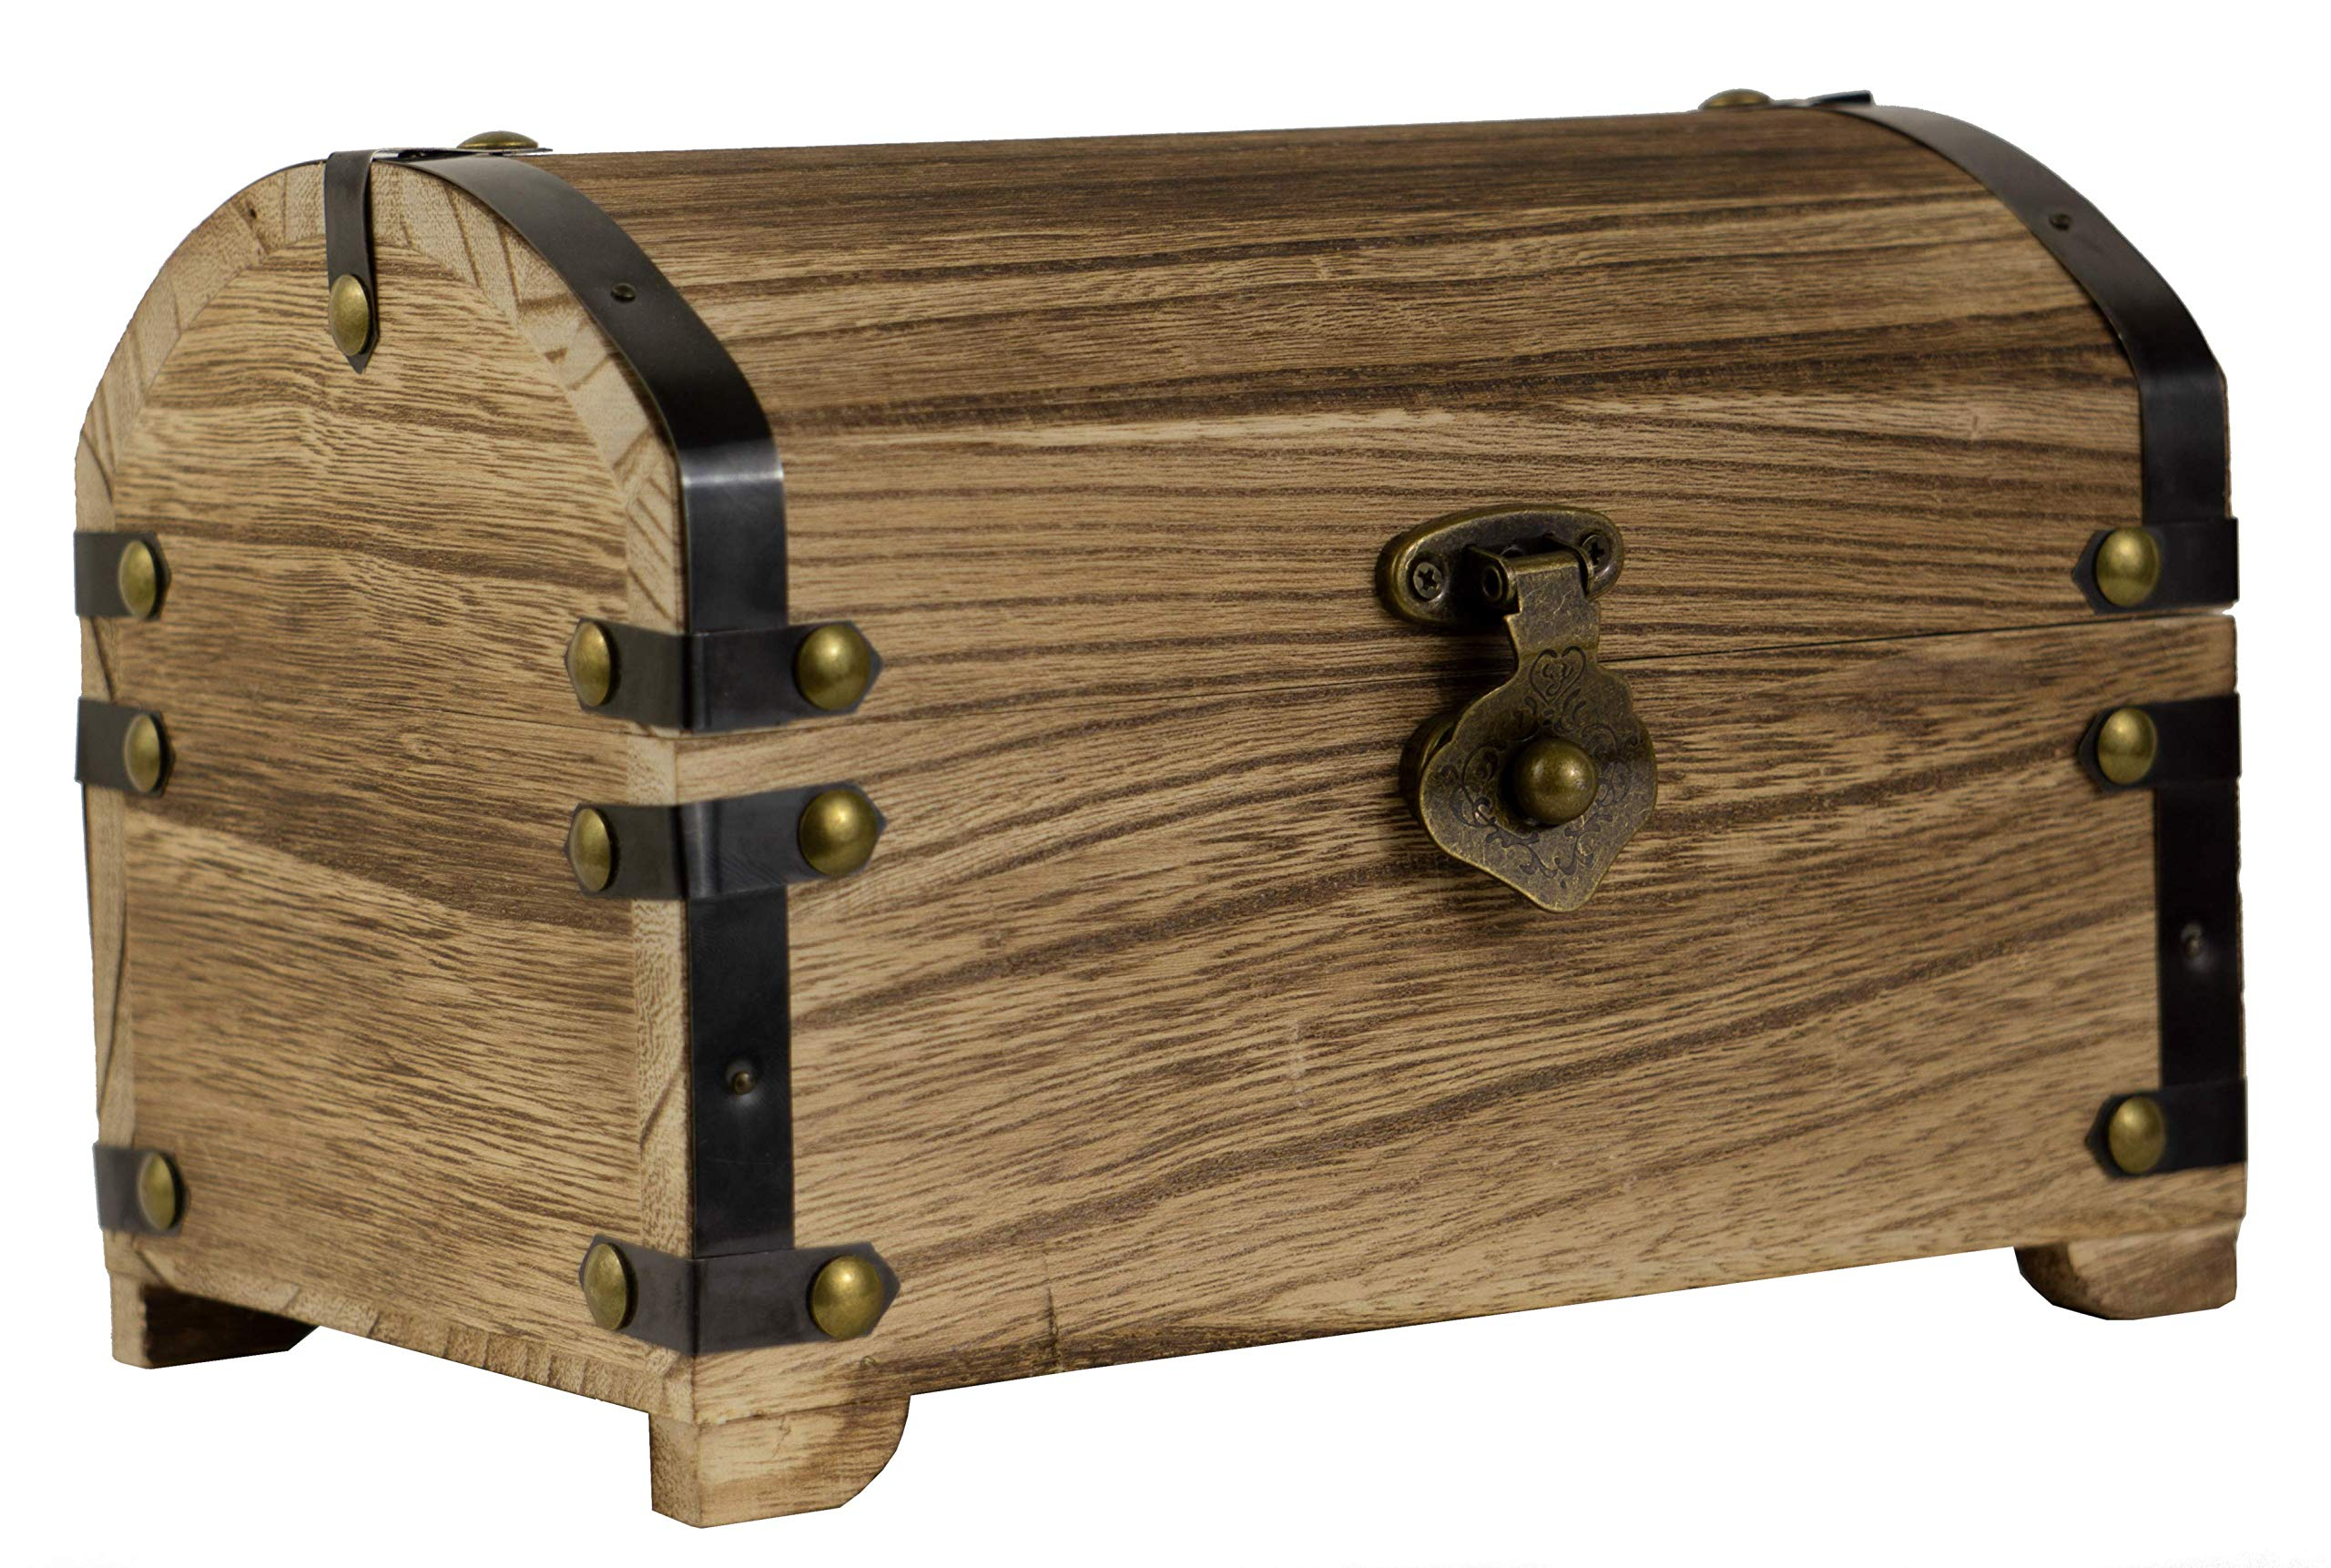 CoreDP Decorative Vintage Wood Treasure Chest, 8.3x5.5x5.5 inches with 90 Degree hinged lid, Old-Fashioned Design, Metal Outline and Buckle [Keepsake Box/Jewelry Box/Toy Treasure Chest]